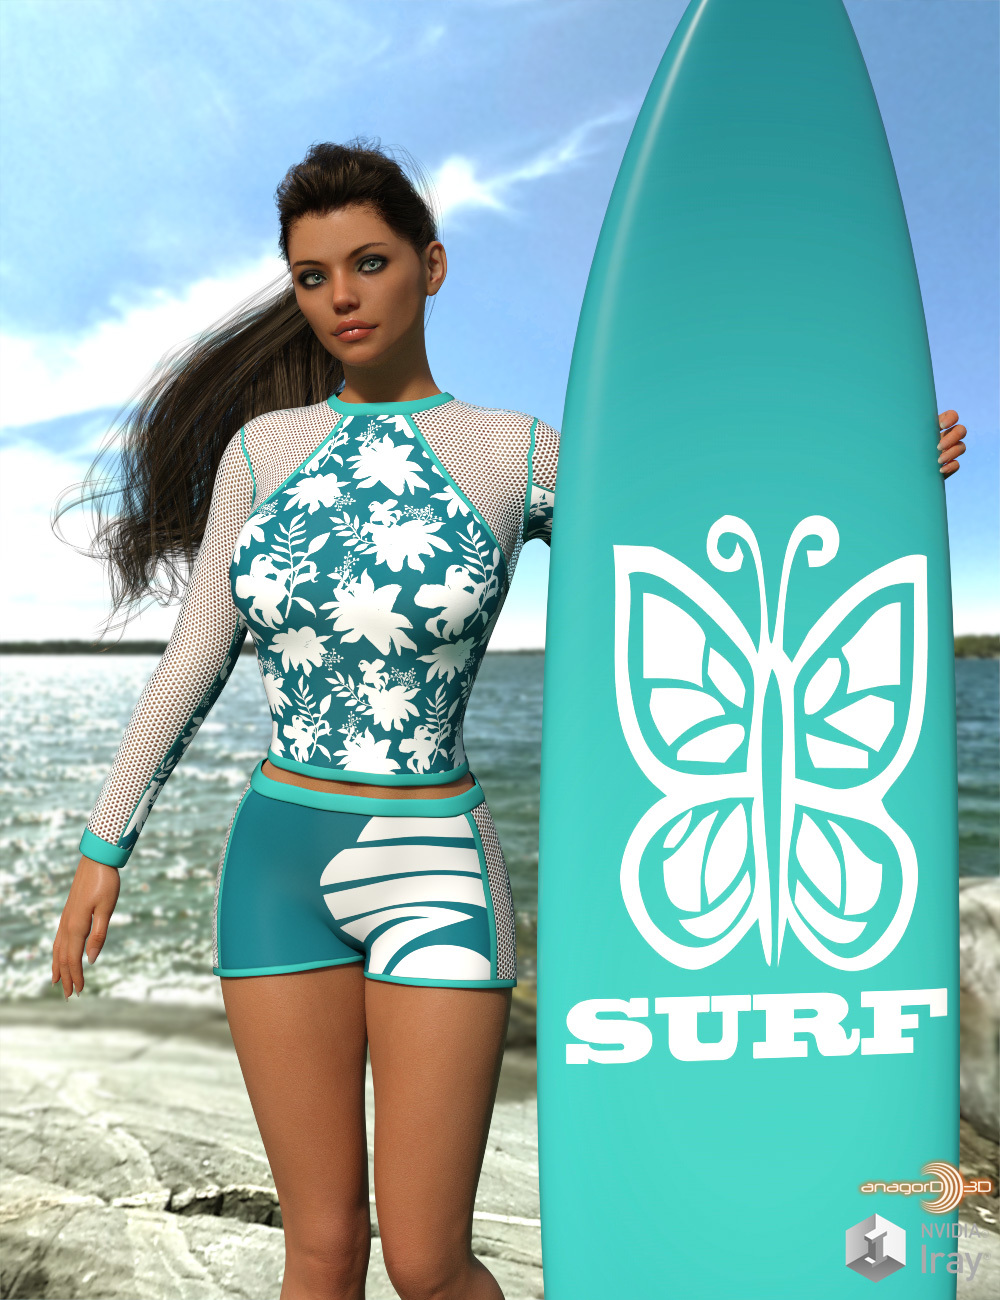 VERSUS - Surfer Girl Outfit for Genesis 8 Female by Anagord